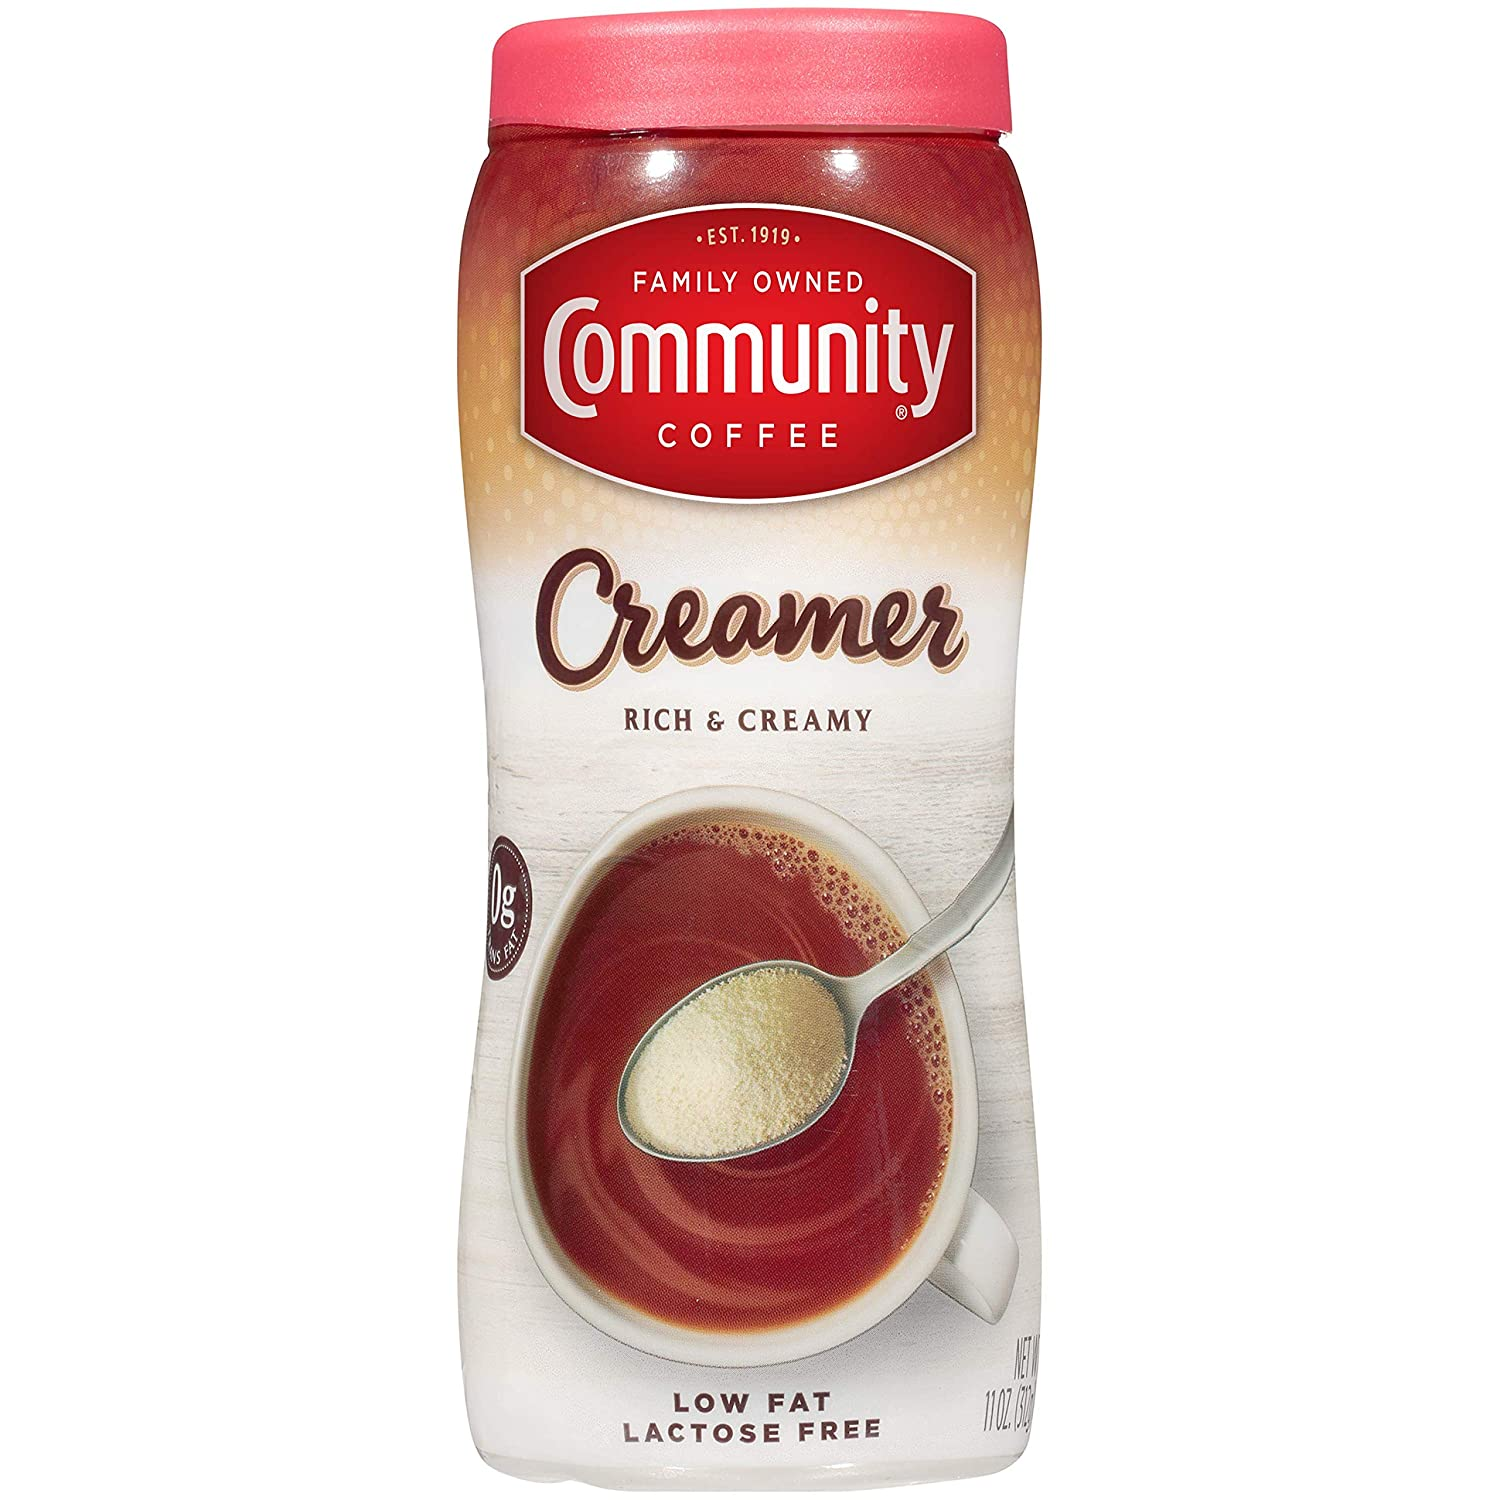 Community OFFicial quality assurance Coffee Non-Dairy Powdered Creamer Ounce Can 11